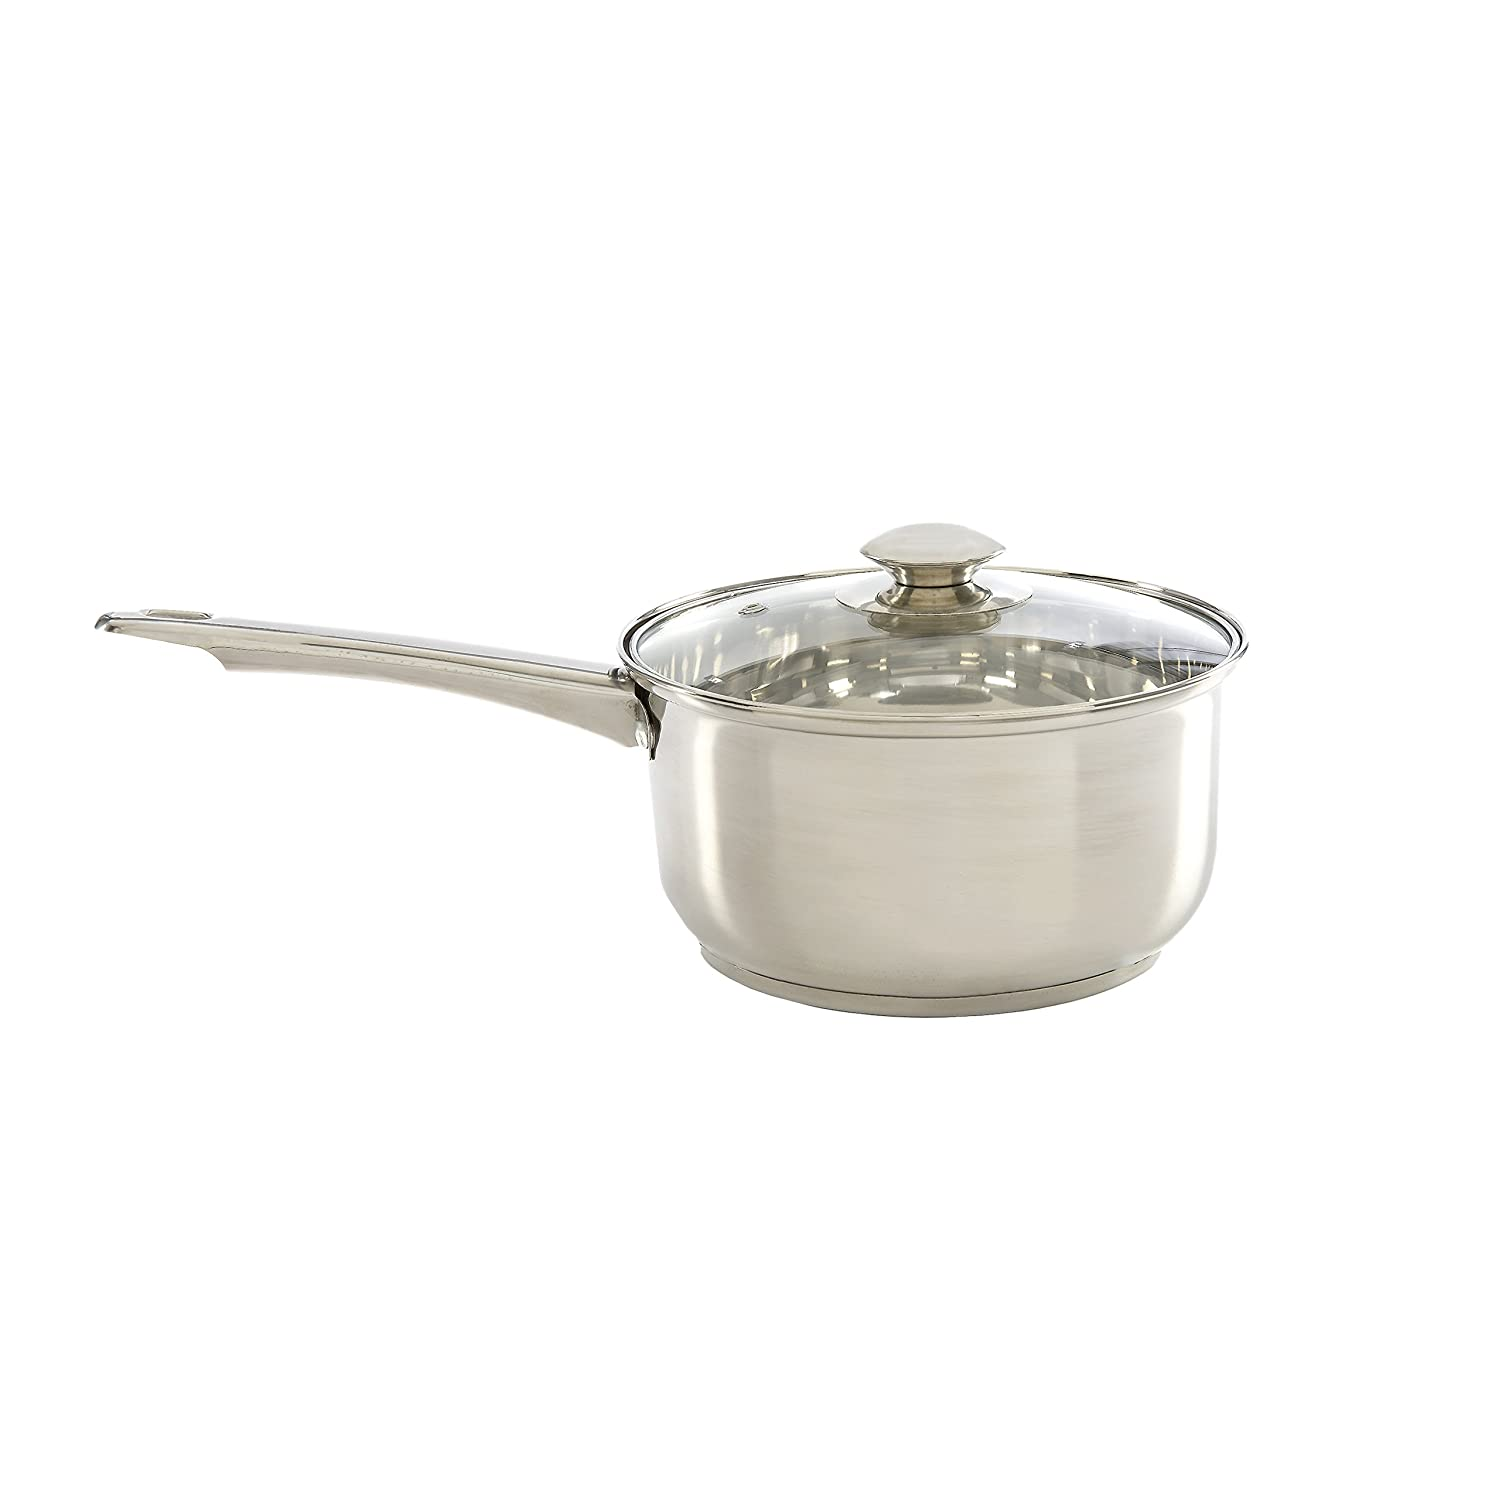 Ecolution Pure Intentions Stainless Steel 2-Quart Saucepan with Glass Lid Epoca Inc. ESTL-2818